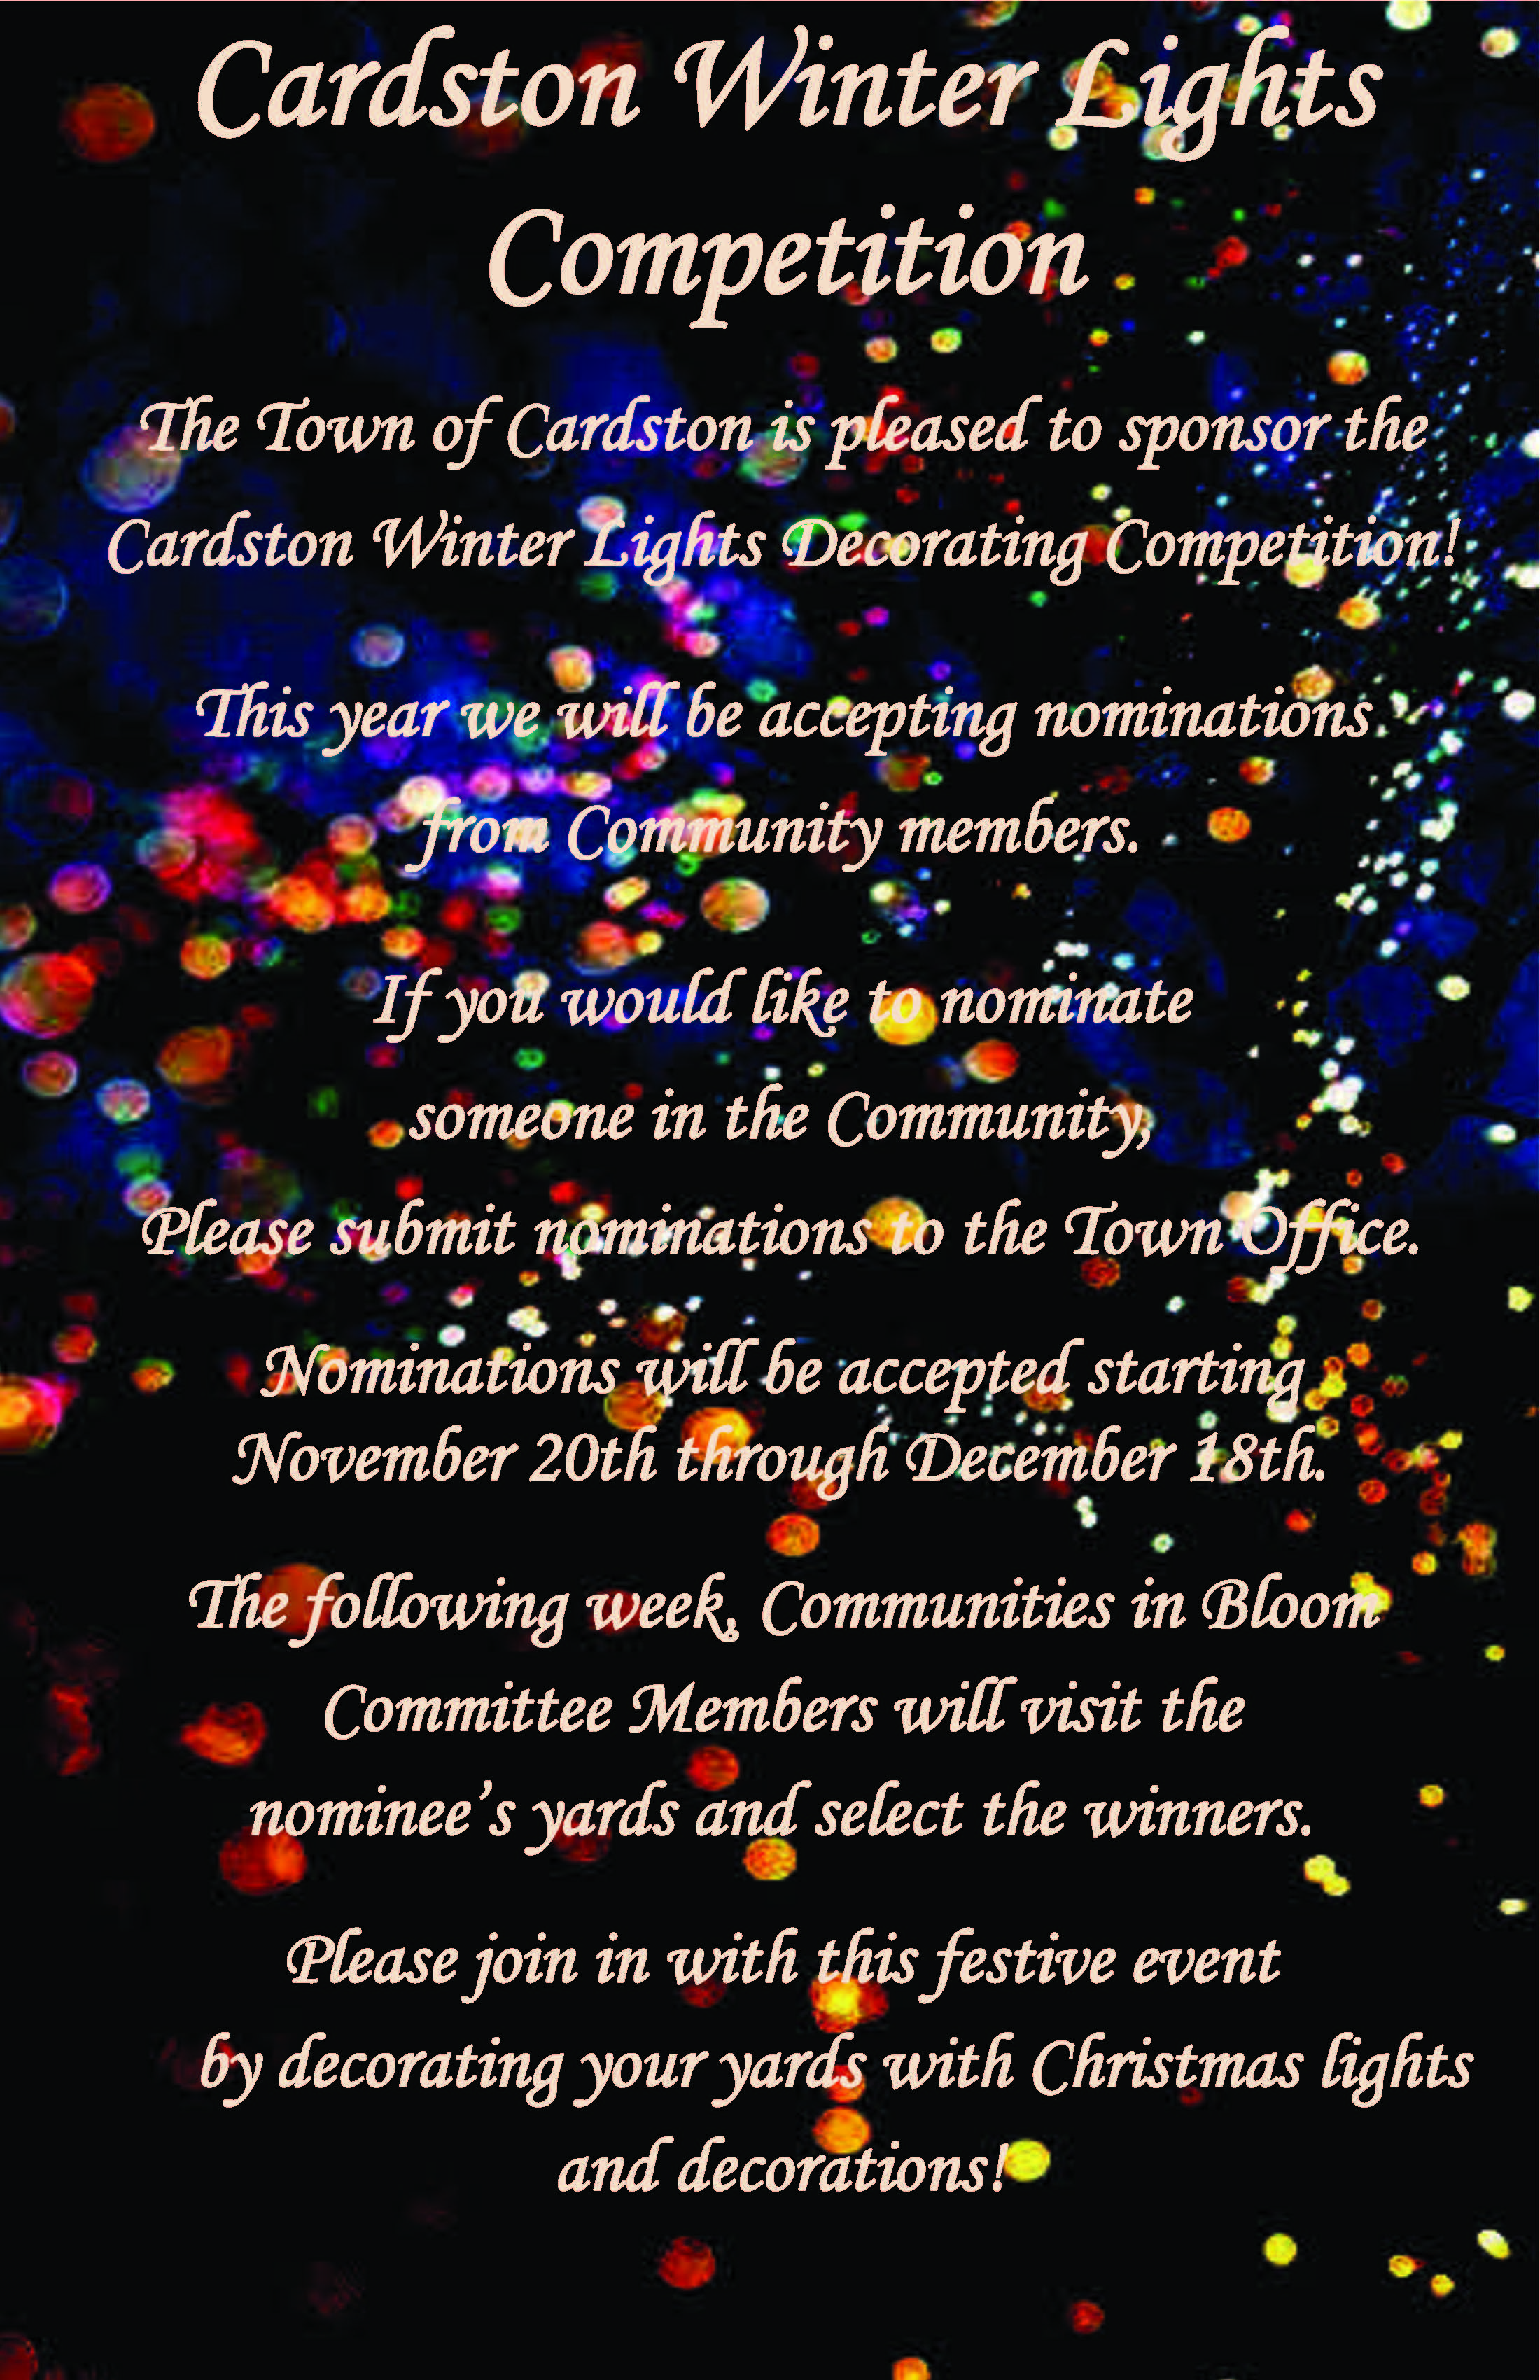 Cardston Winter Lights Competition3.jpg